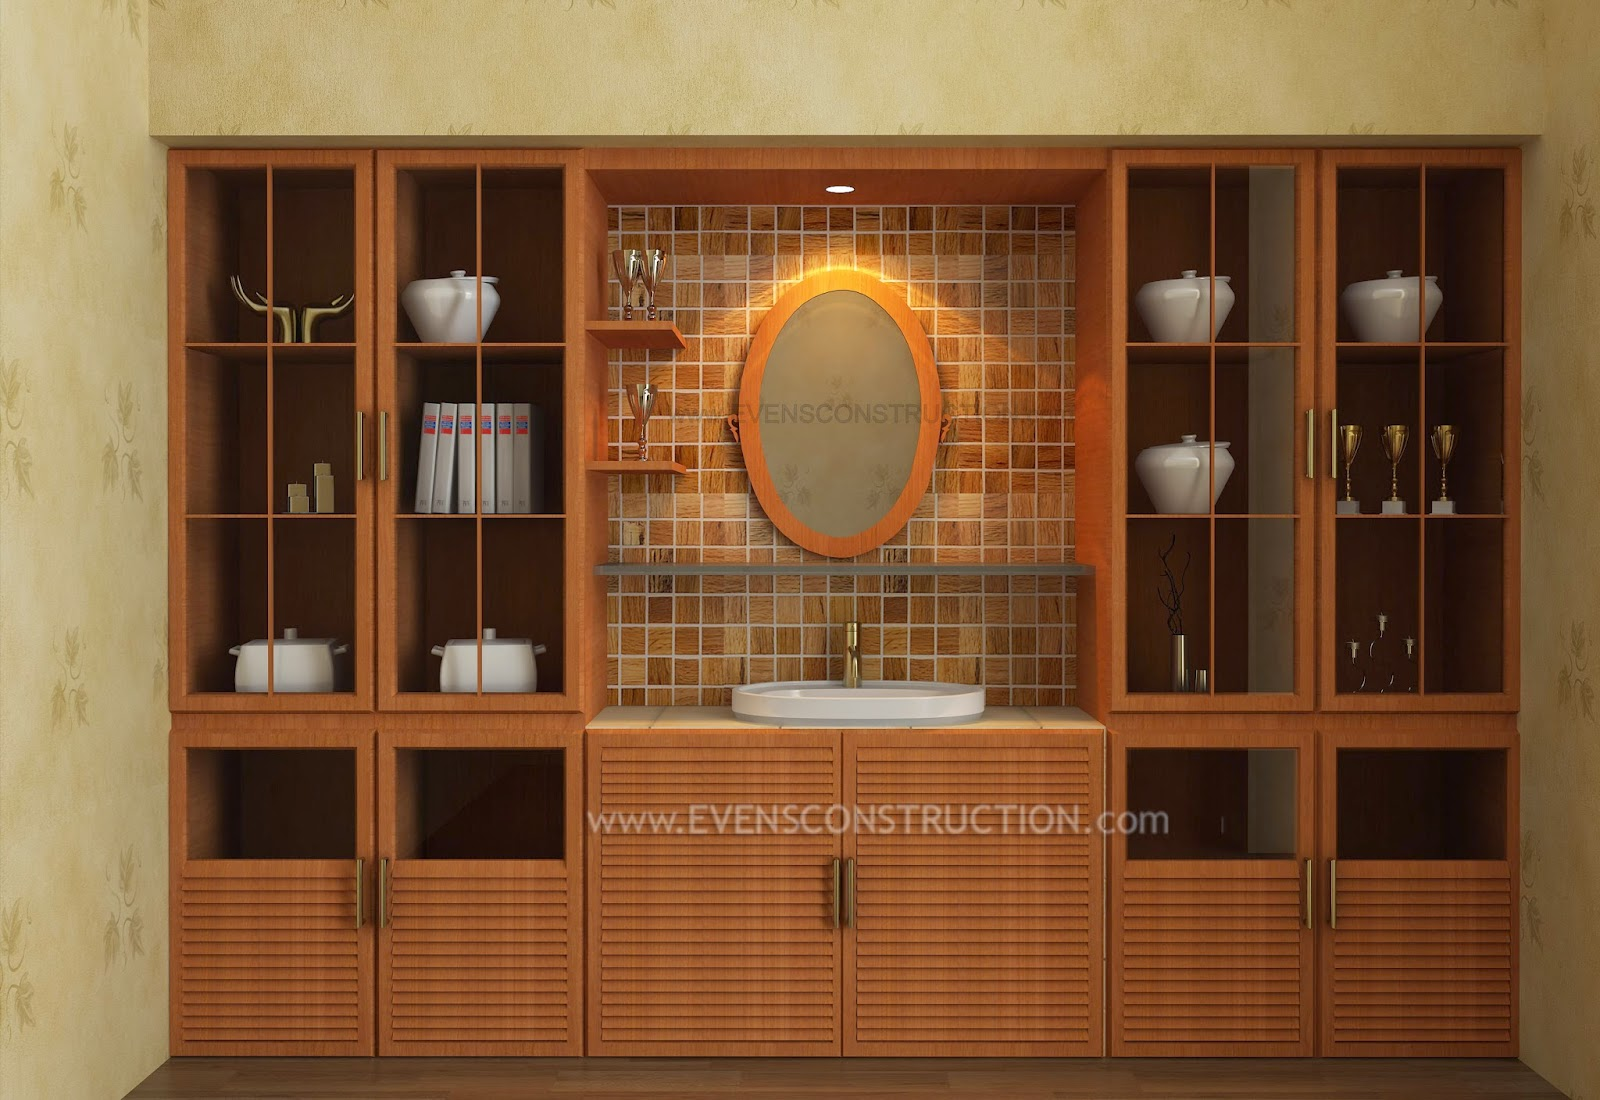 Crockery shelf with wash area | Dining Room Interiors Photos